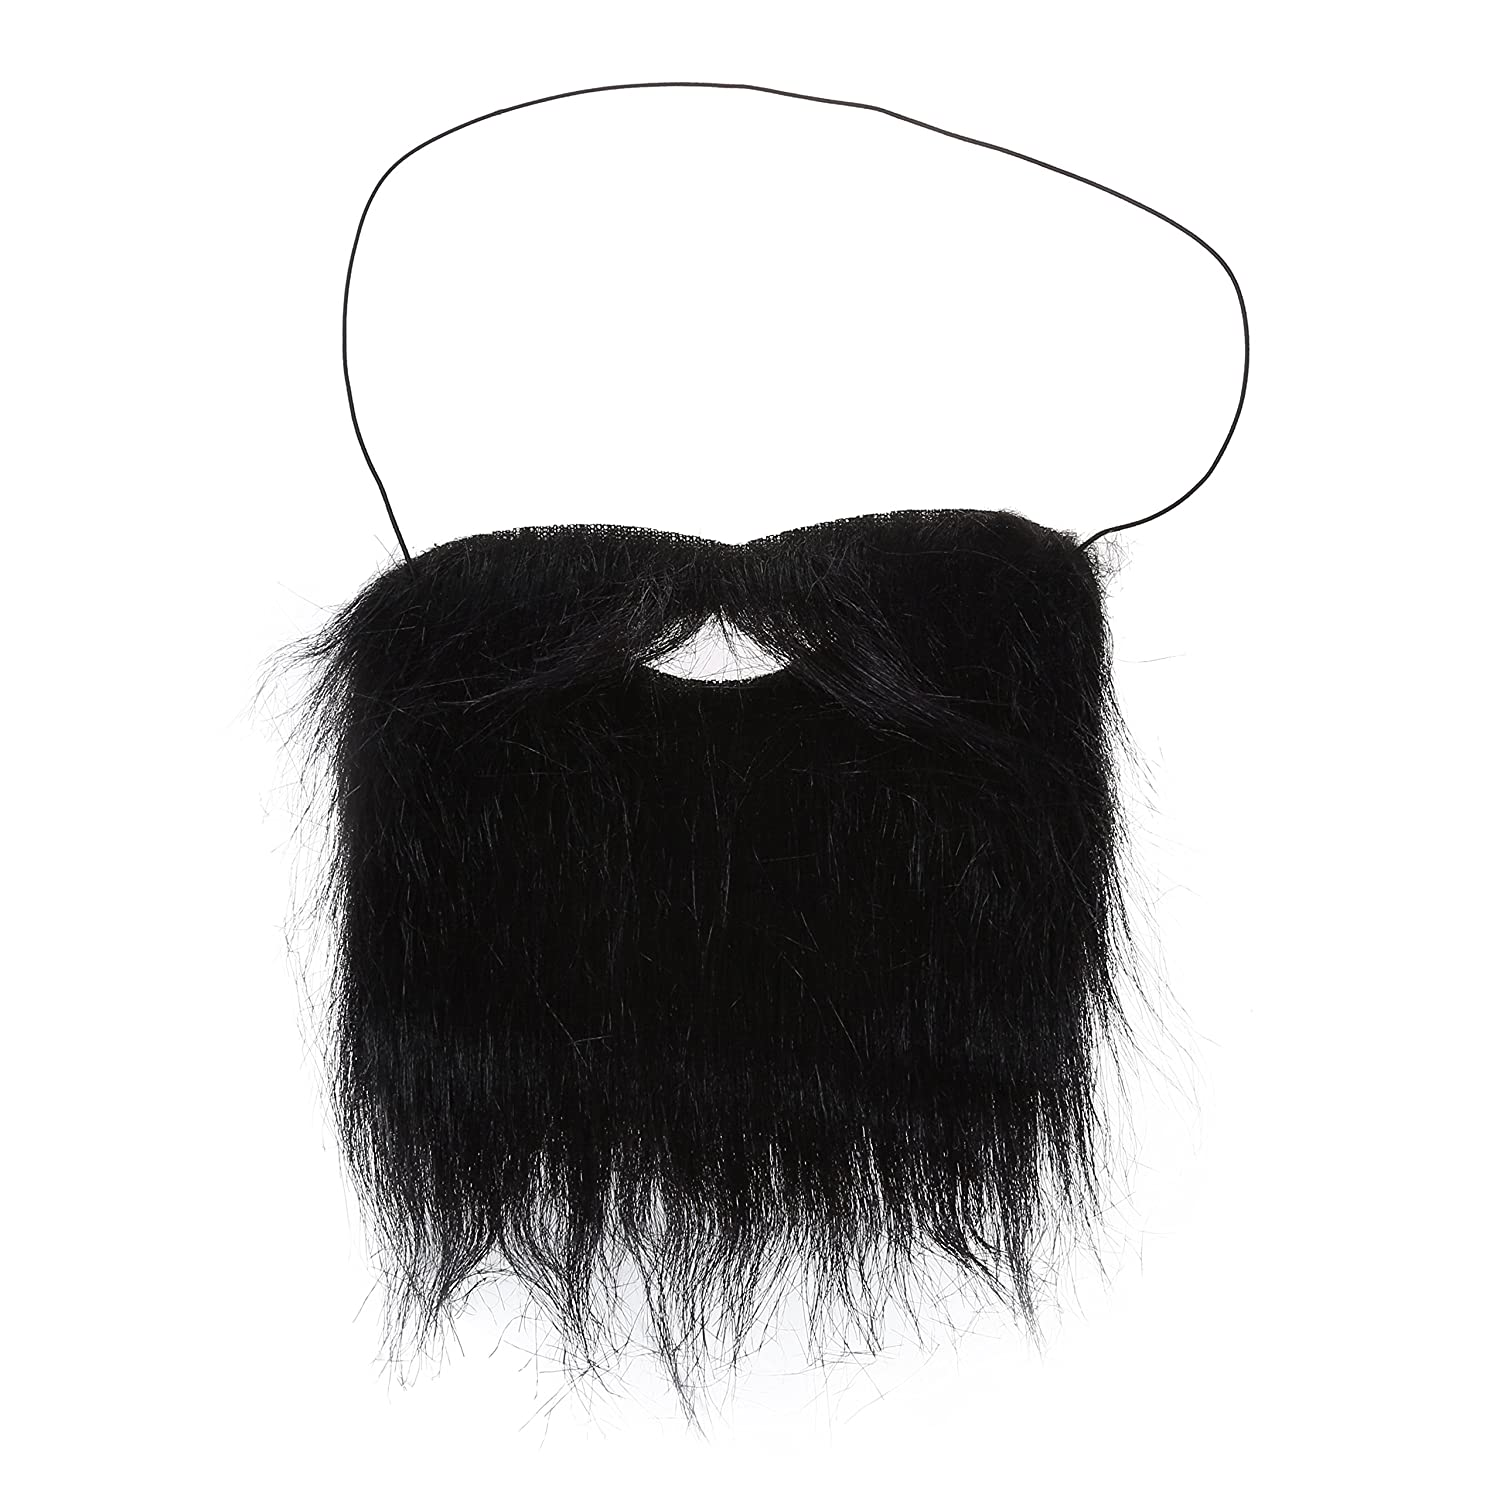 Cosplay Fake Beards - SODIAL(R)2pcs Halloween Costume Fake Beards with Strap Black 079279